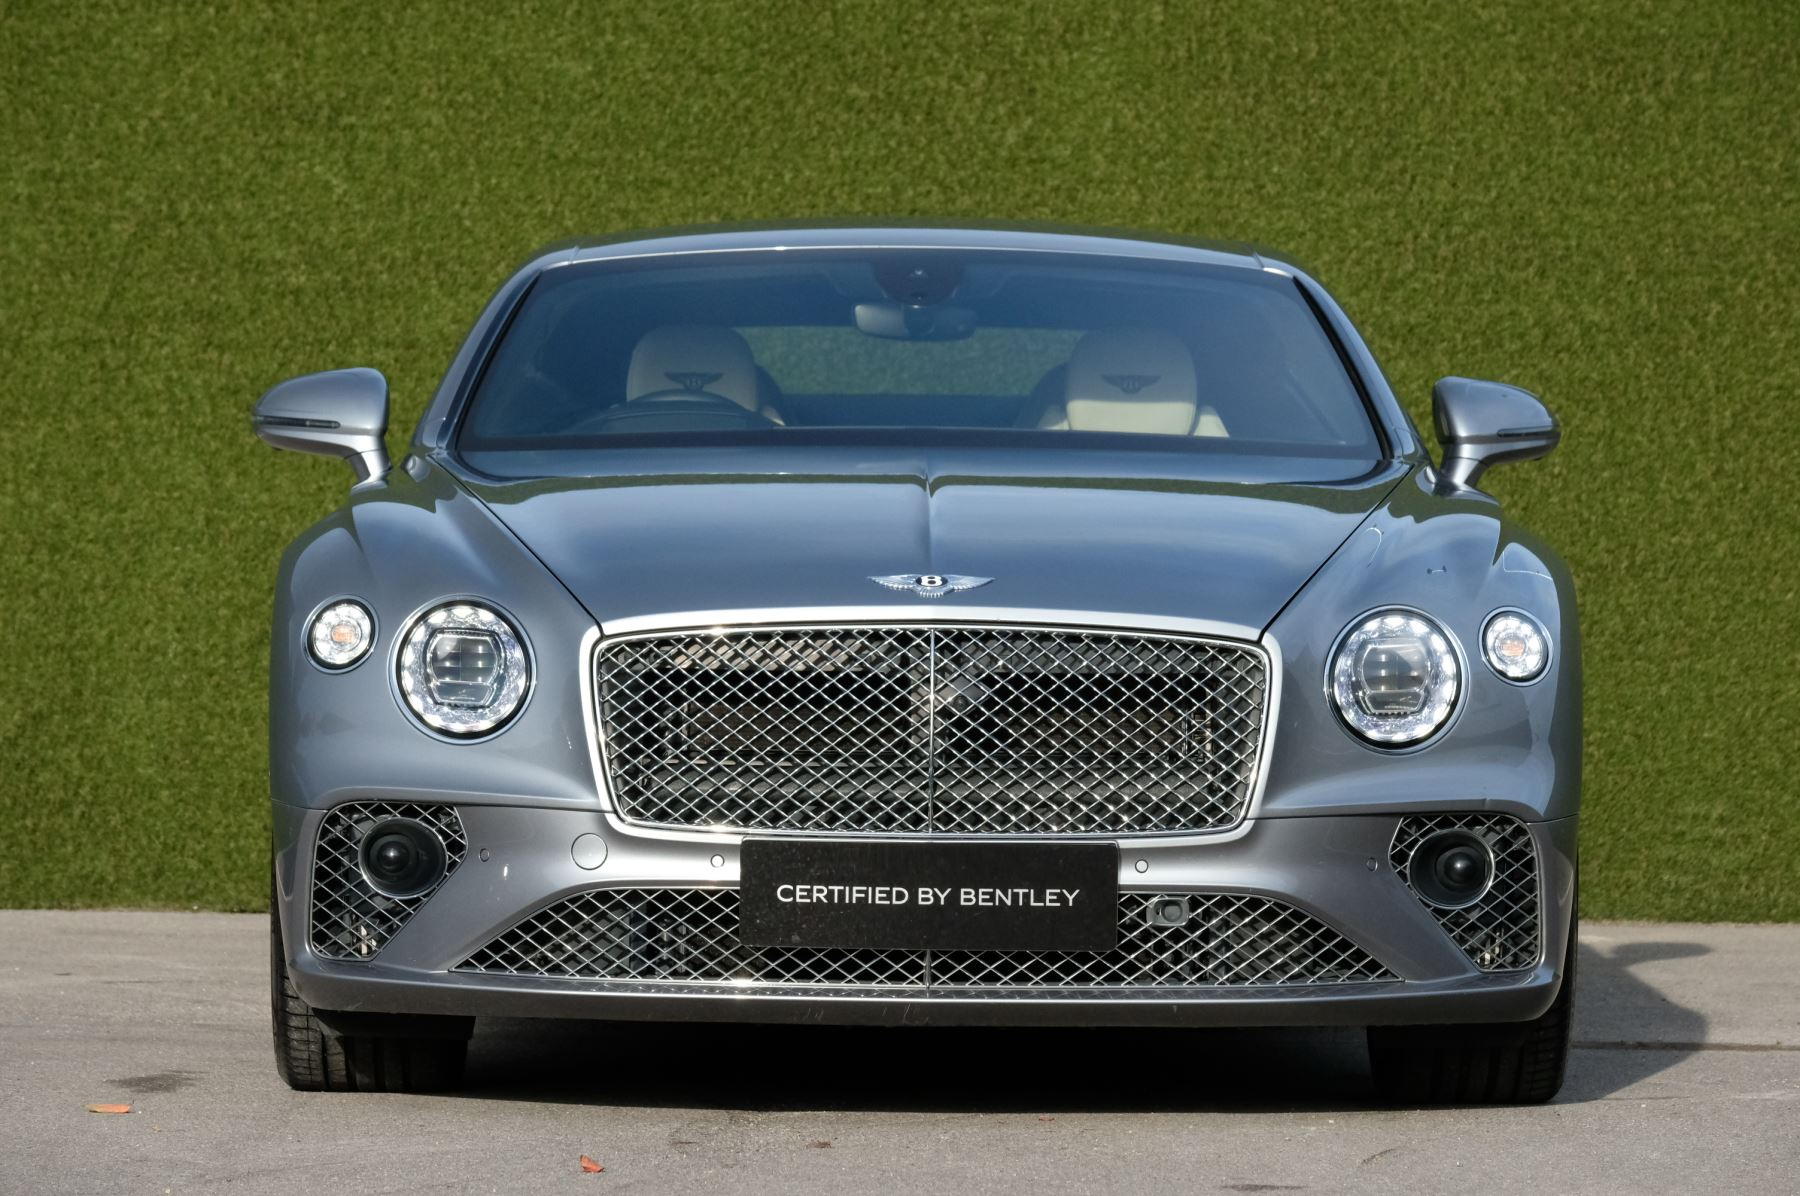 Bentley Continental GT 6.0 W12 2dr Mulliner Driving Specification image 2